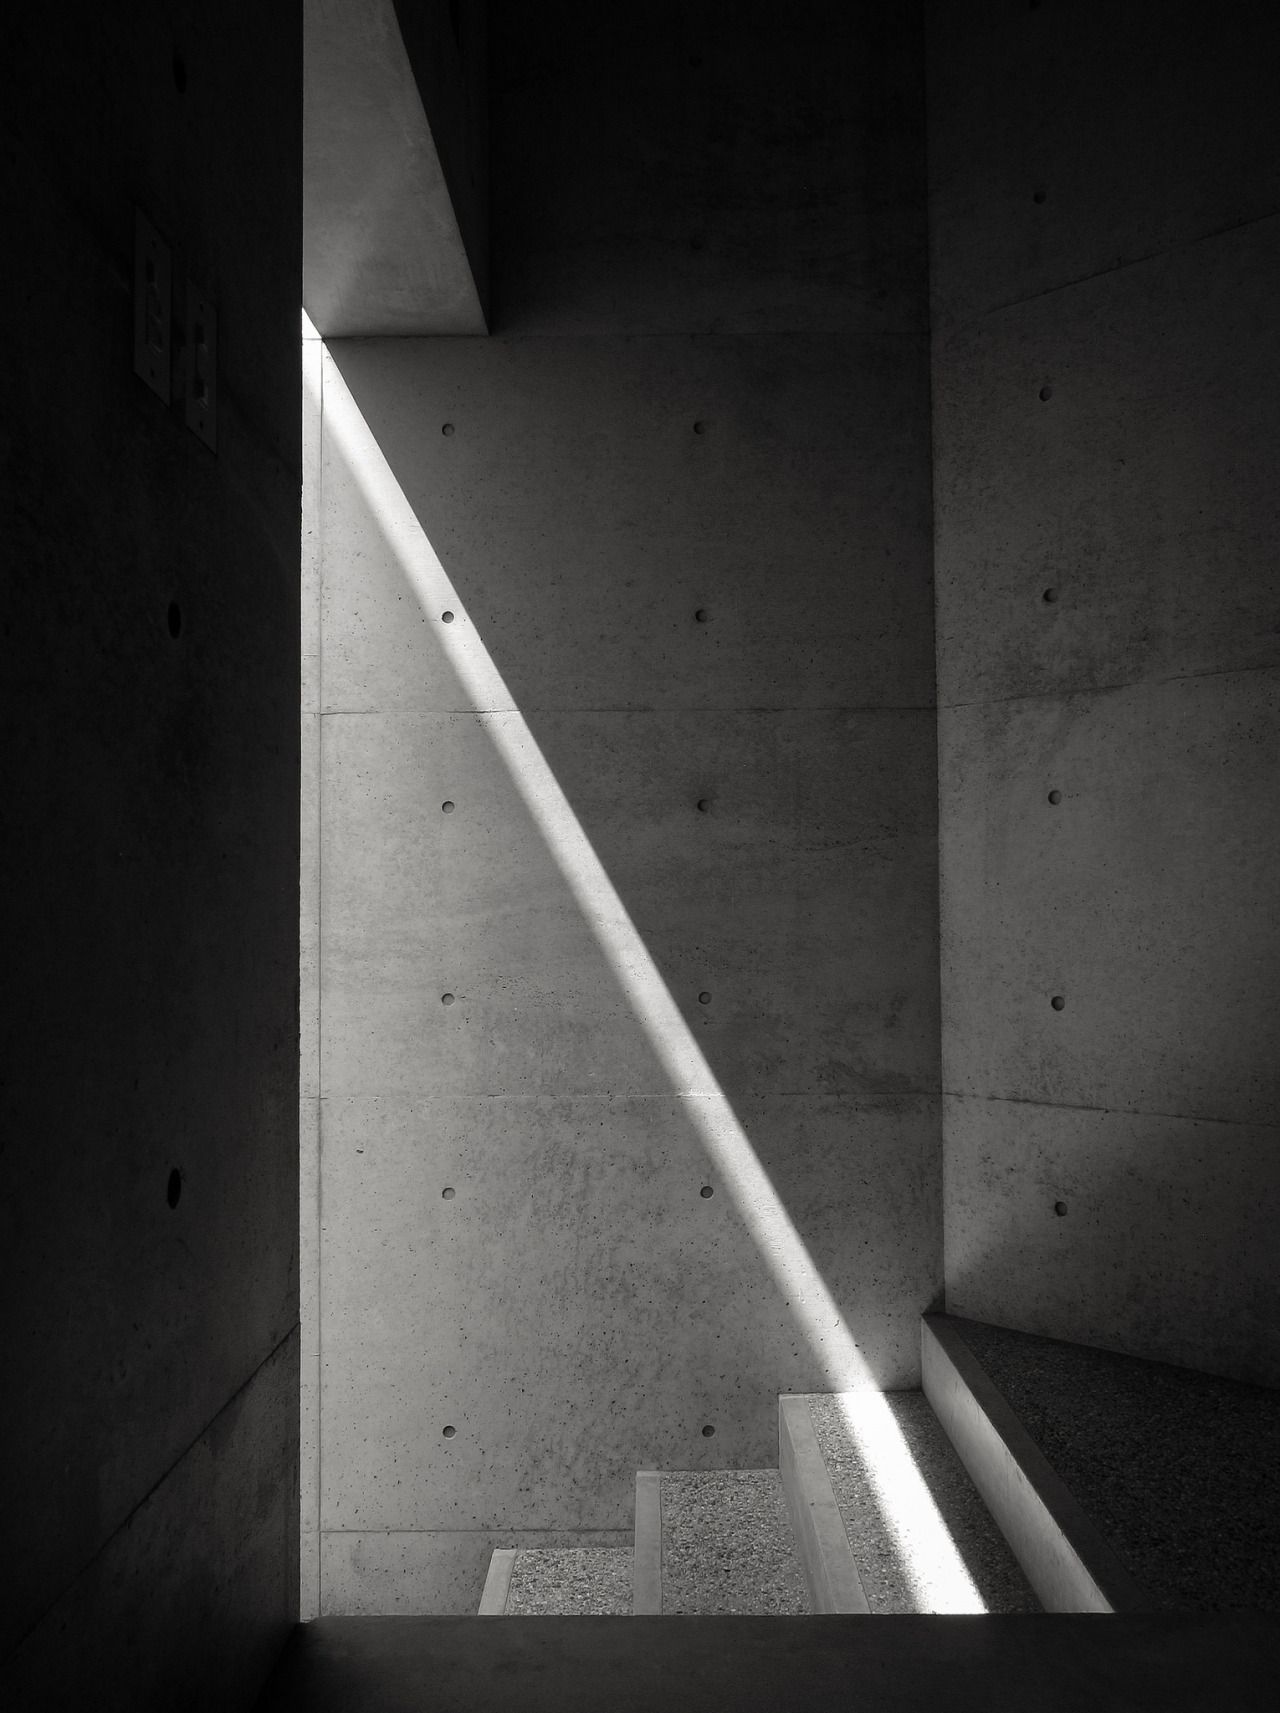 Water Temple by Tadao Ando. Chris Schroeer Heiermann photography.